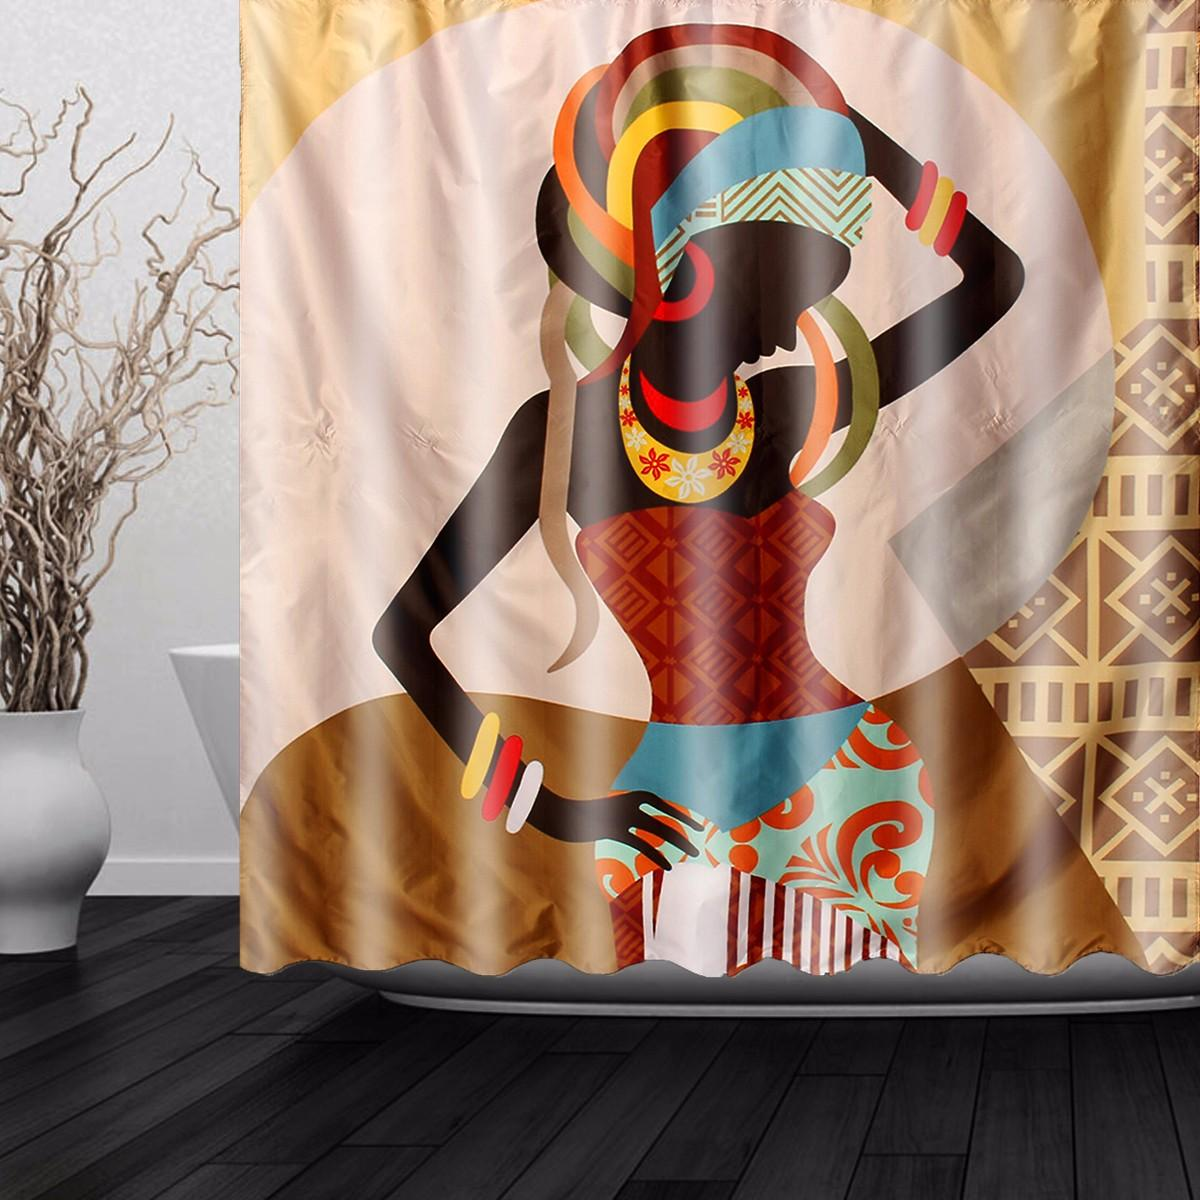 180*180CM Women African Shower Curtain Fashion Bathroom Shower Curtain Waterproof Tub Curtain Home Decor With 12 Hooks Gift